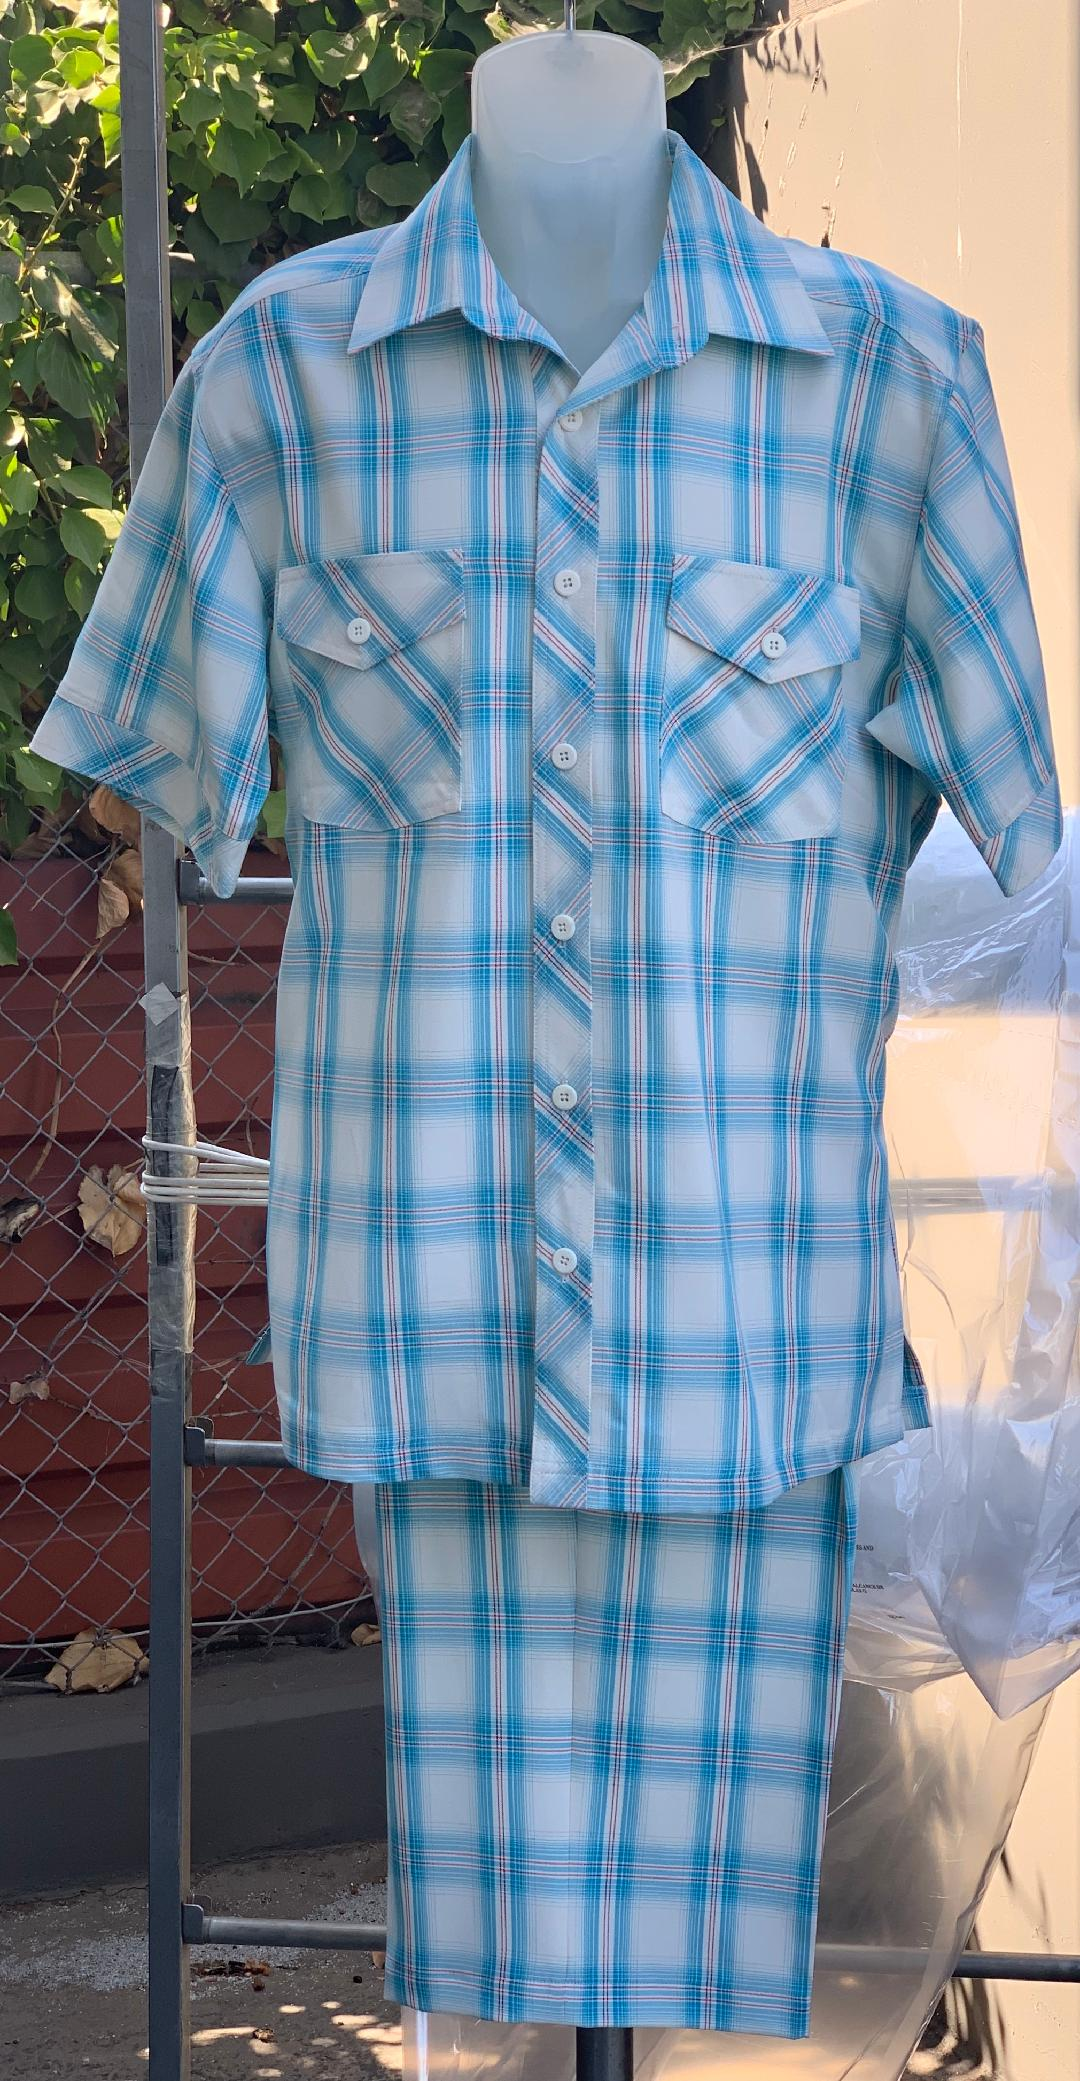 Crosshatch Checkered Dual Pocket Short Sleeve 2pc Walking Suit Shorts Set - Teal